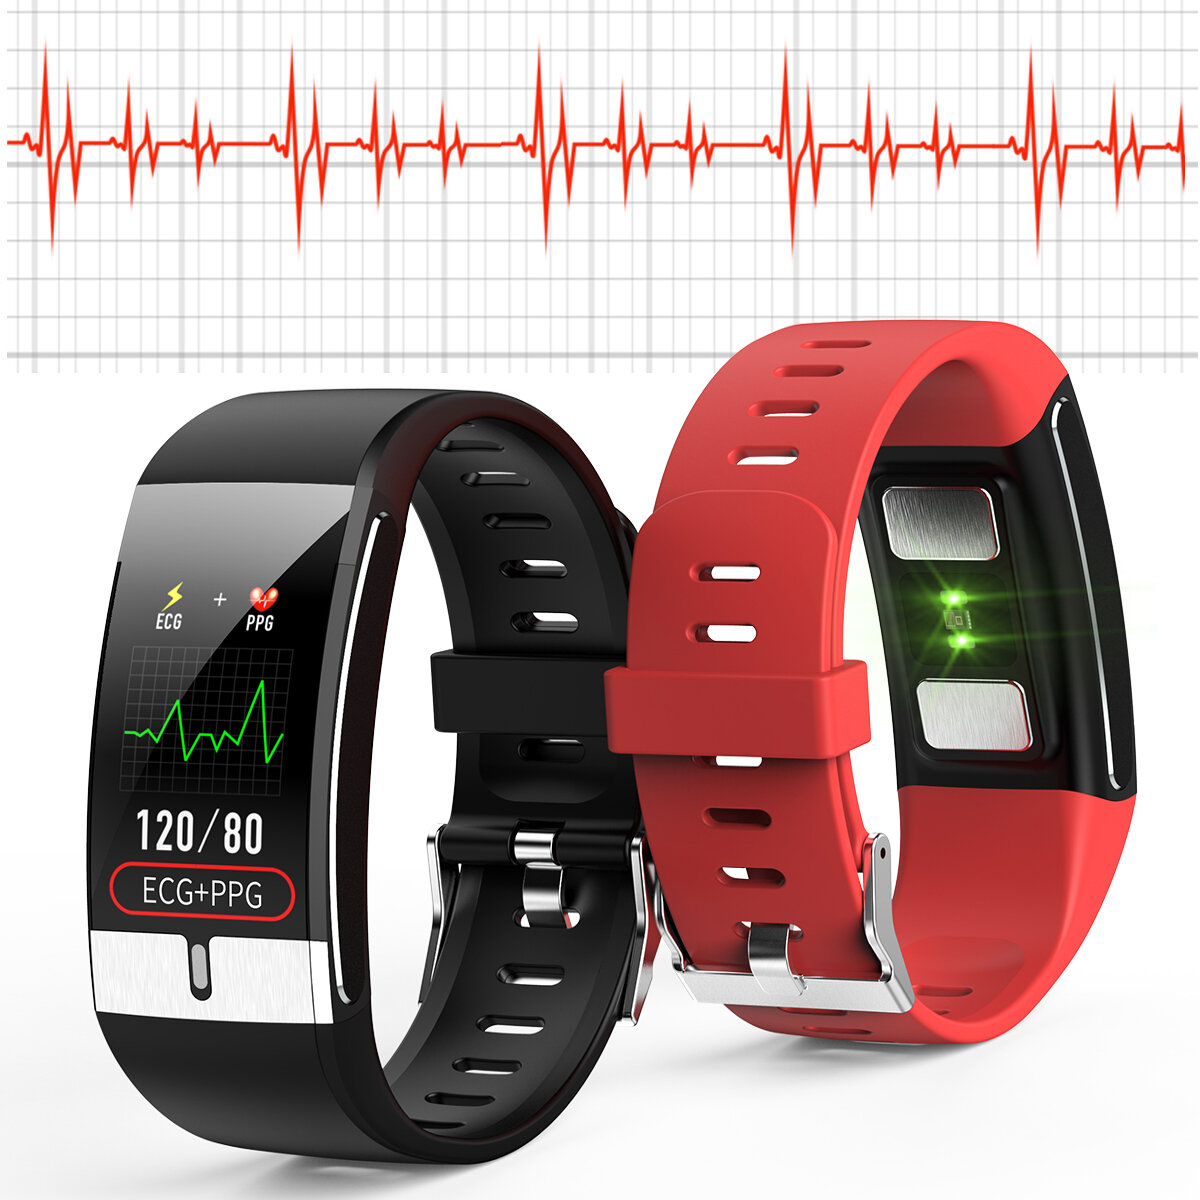 [SPO2 Monitor]Bakeey E66 Thermometer ECG+PPG Heart Rate Blood Pressure Oxygen Monitor IP68 Waterproof USB Charging Smart Watch